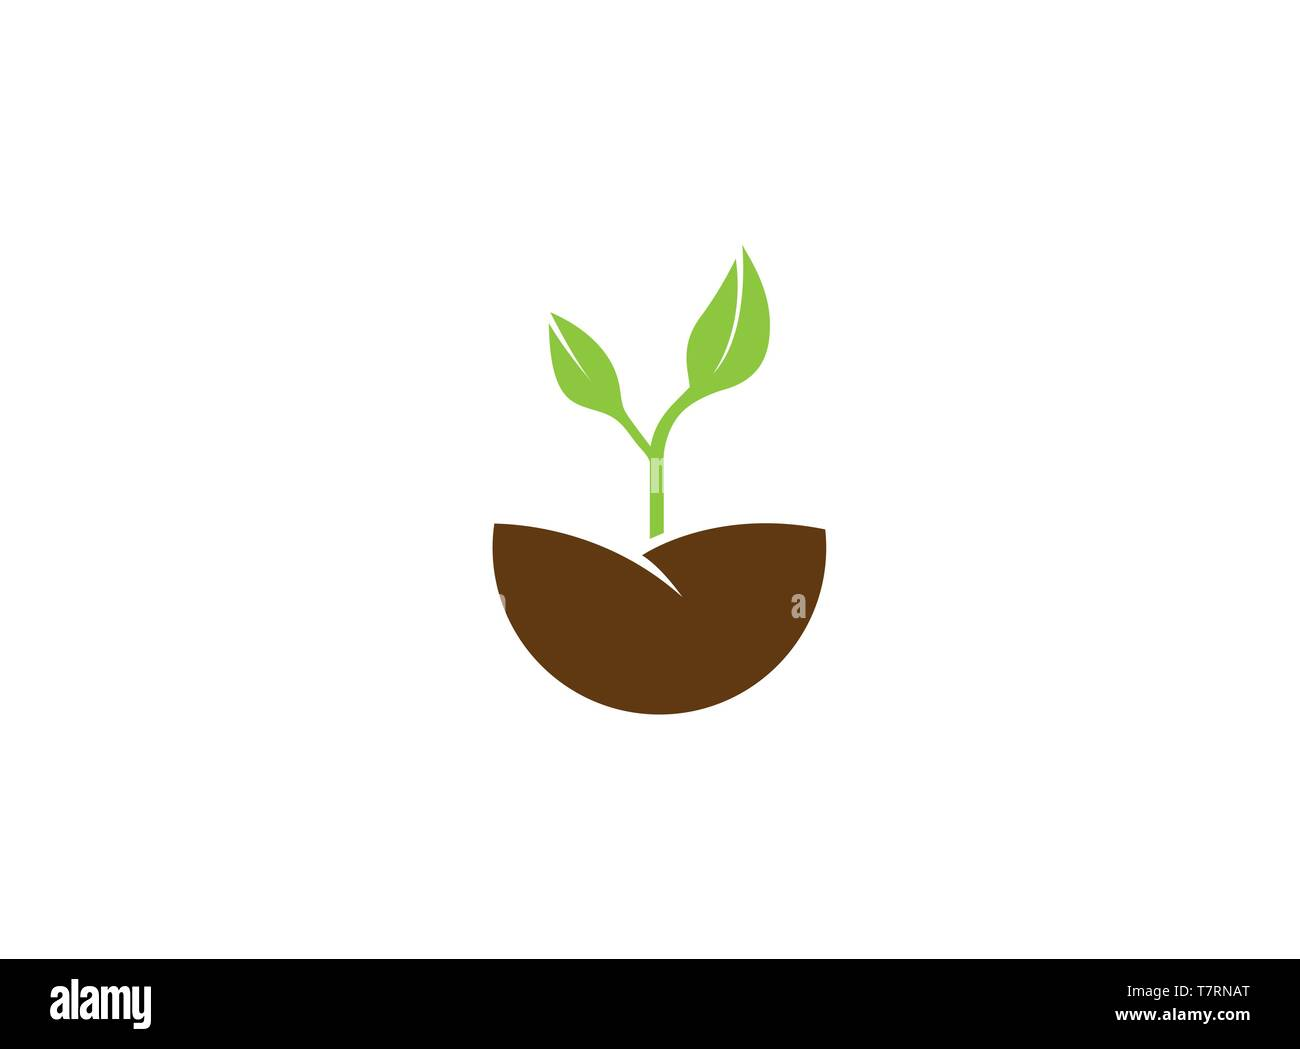 Farming growing Plants with leaves for logo - Stock Vector